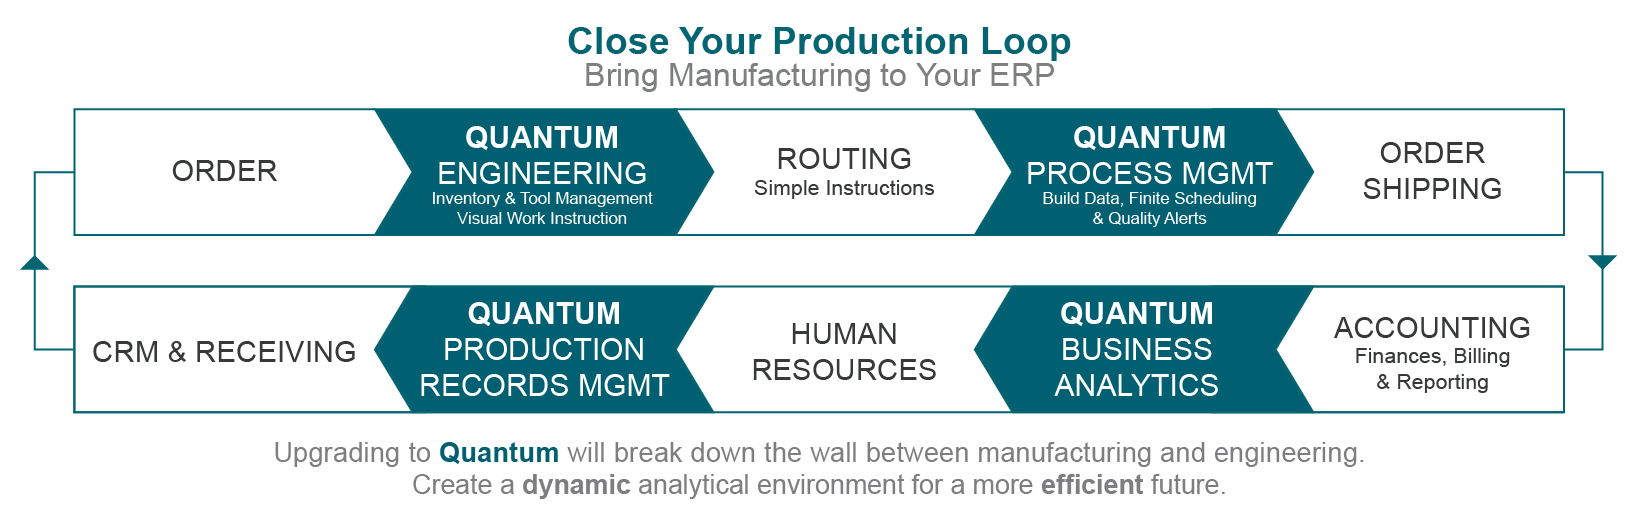 ERP PRODUCTION LOOP